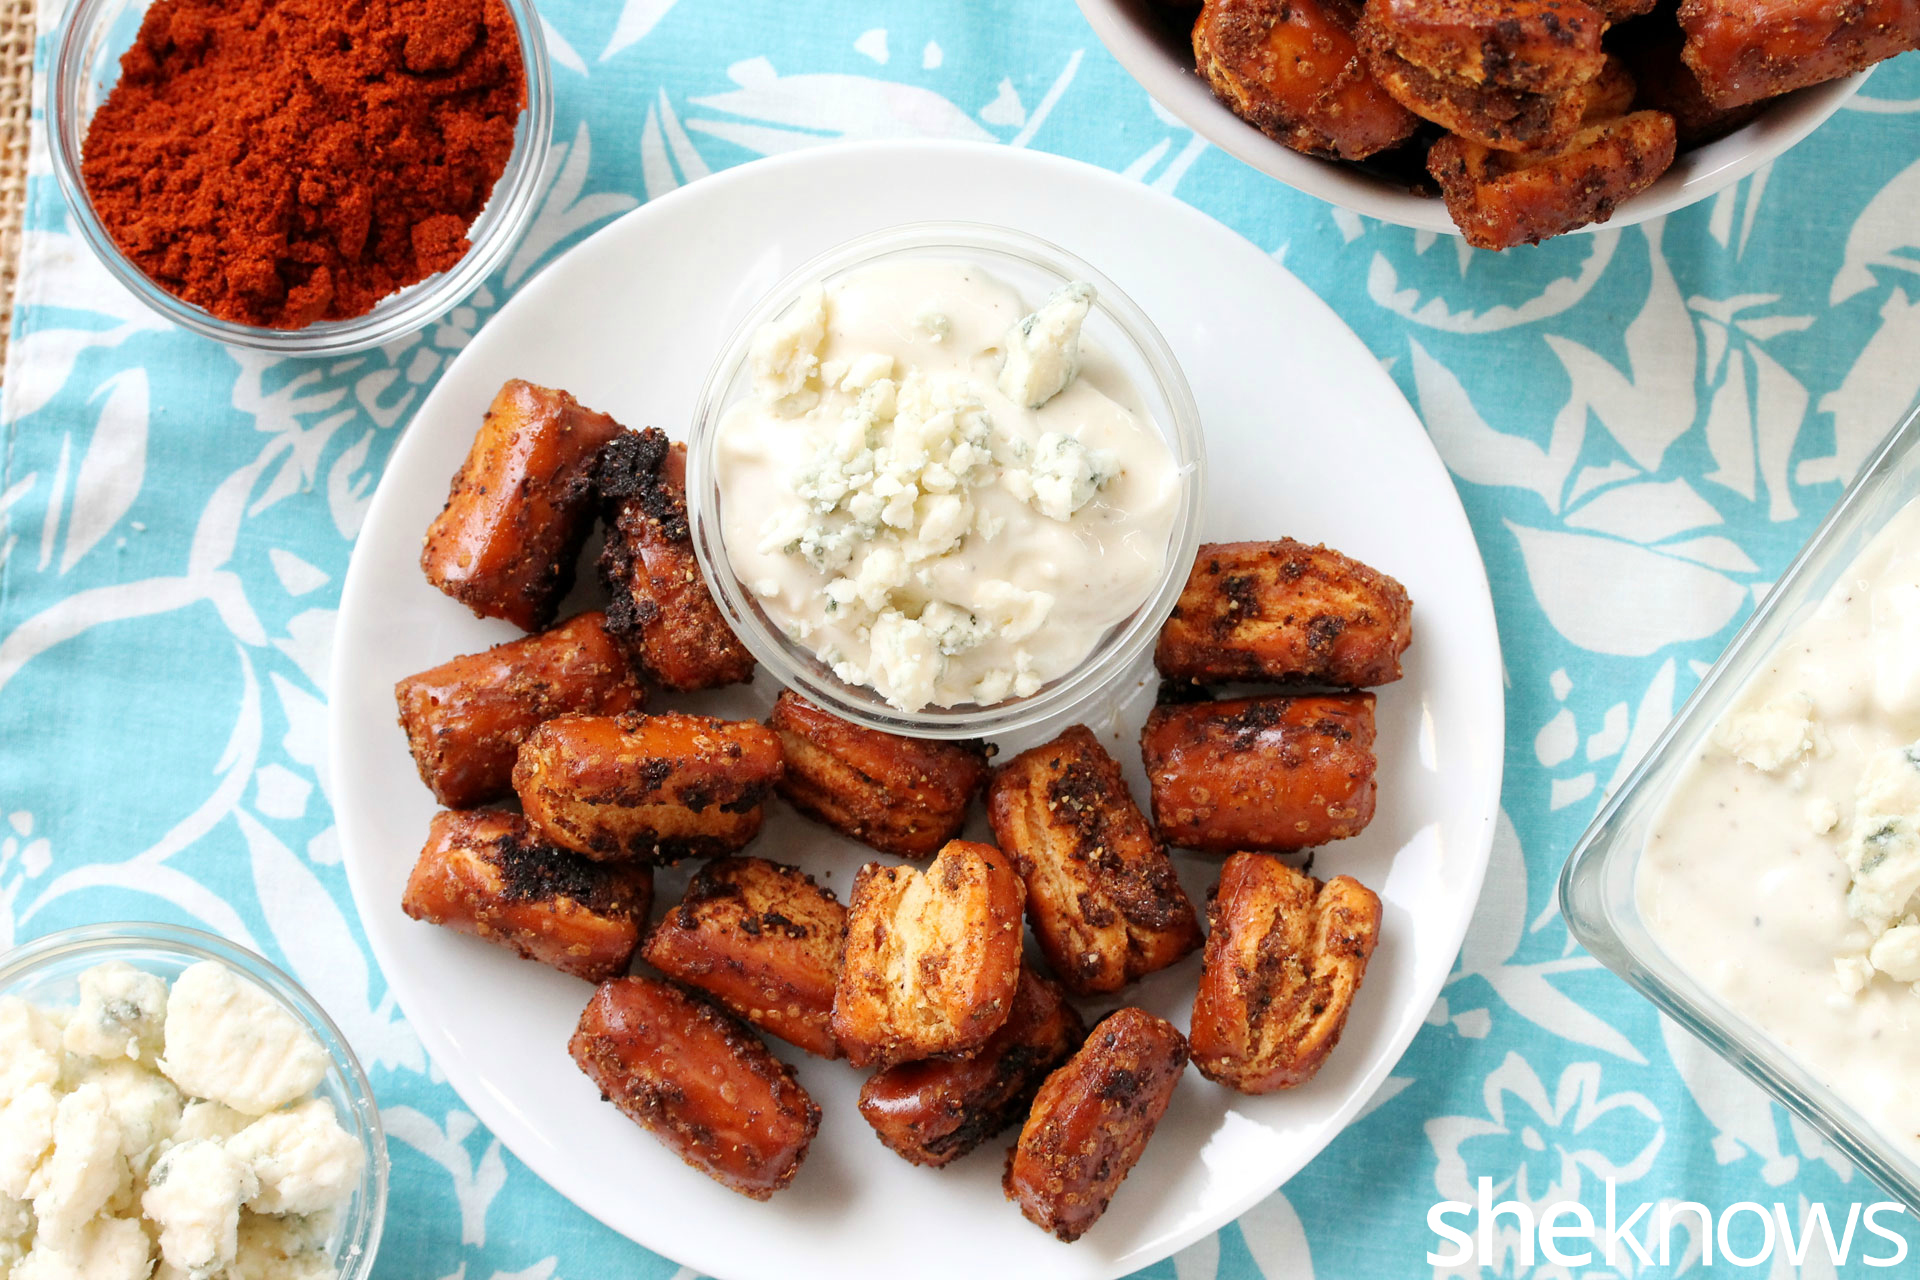 Blue cheese dip with buffalo wing pretzels